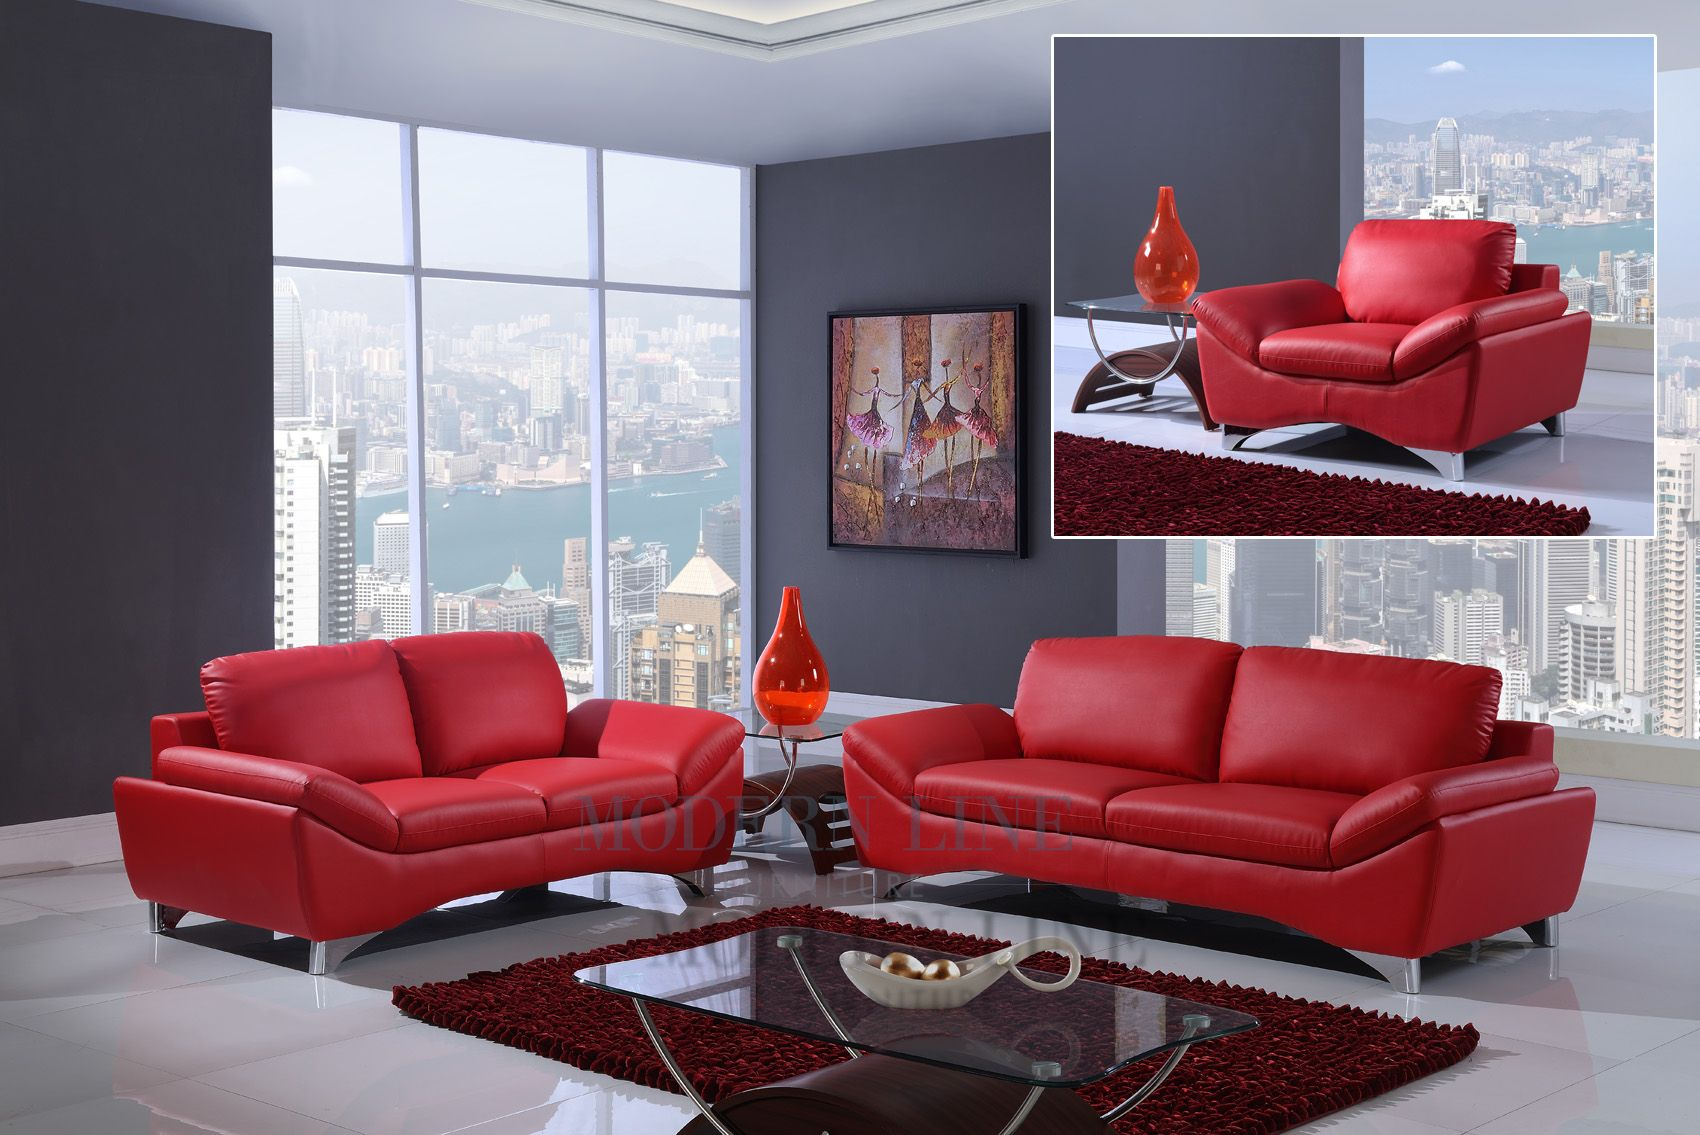 1600 For Set Modern Red Leather Of Sofa Loveseat And Chair